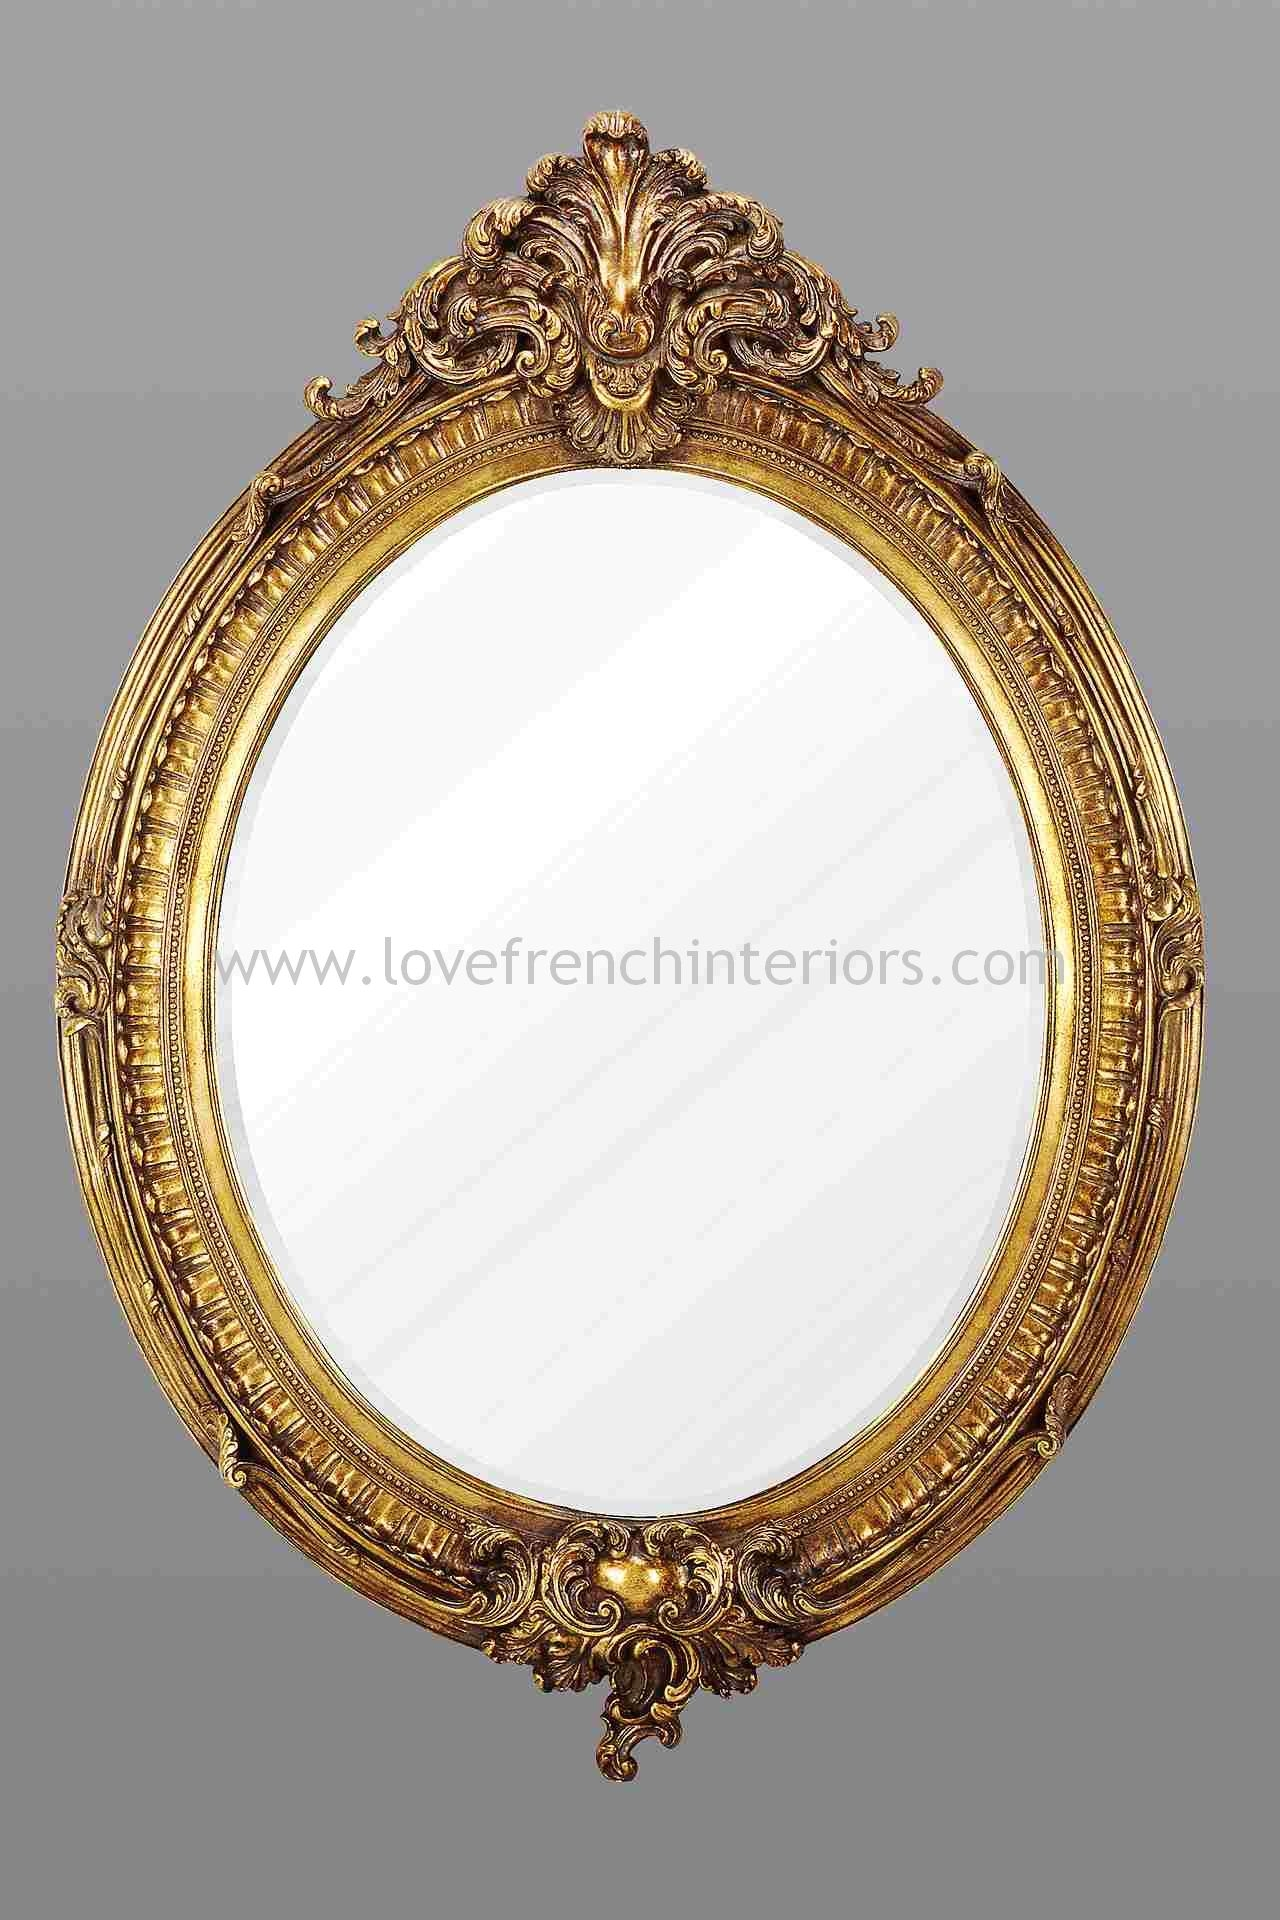 Gold Oval French Mirror Pertaining To Antique Gold Mirror French (View 8 of 15)